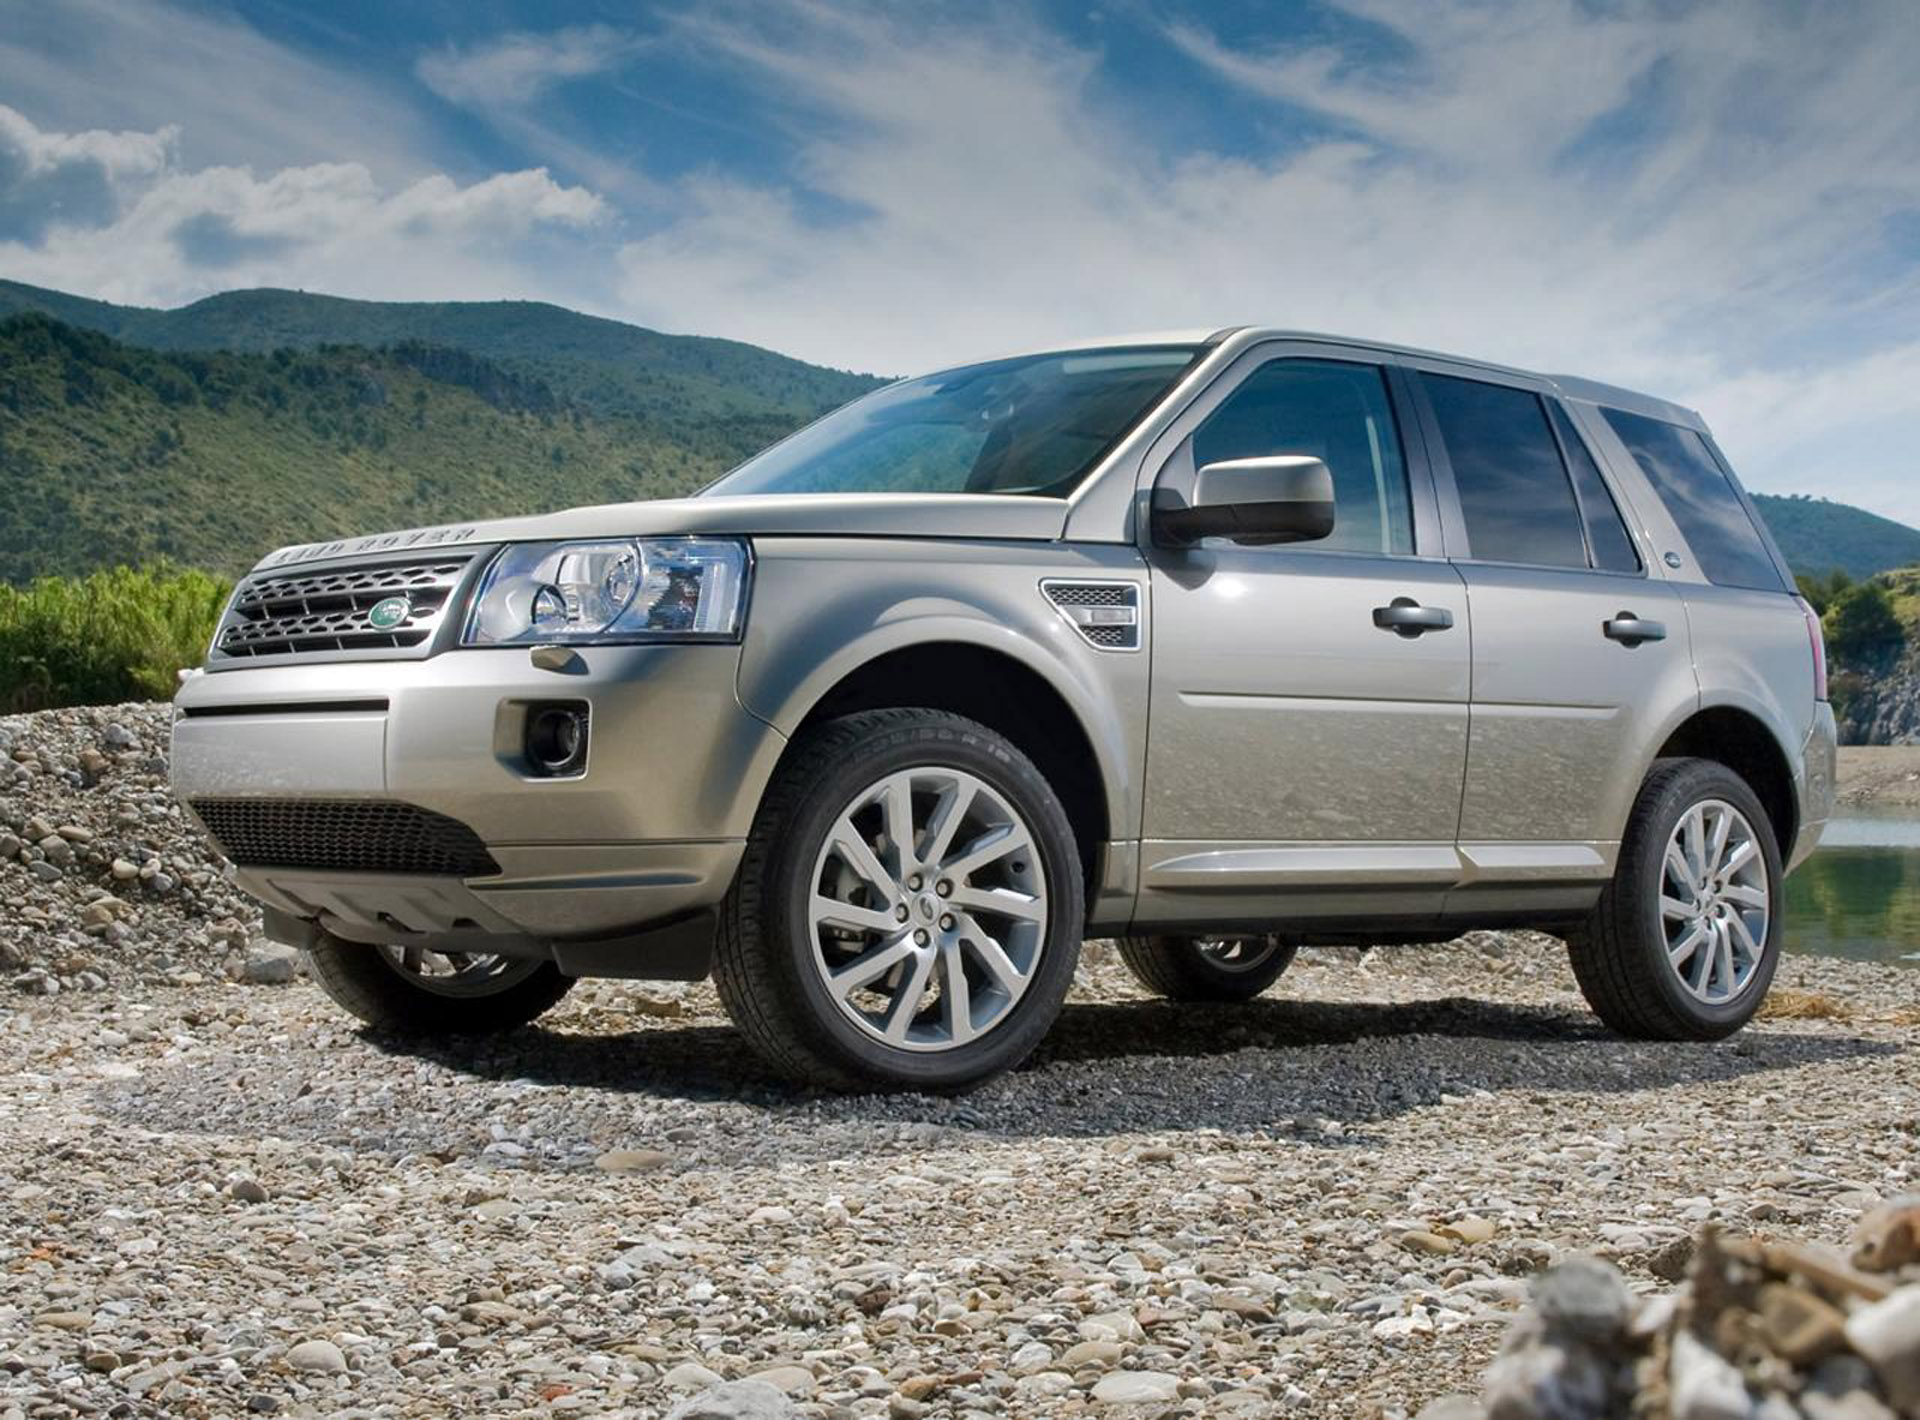 2011 land rover freelander 2 full details and specification. Black Bedroom Furniture Sets. Home Design Ideas